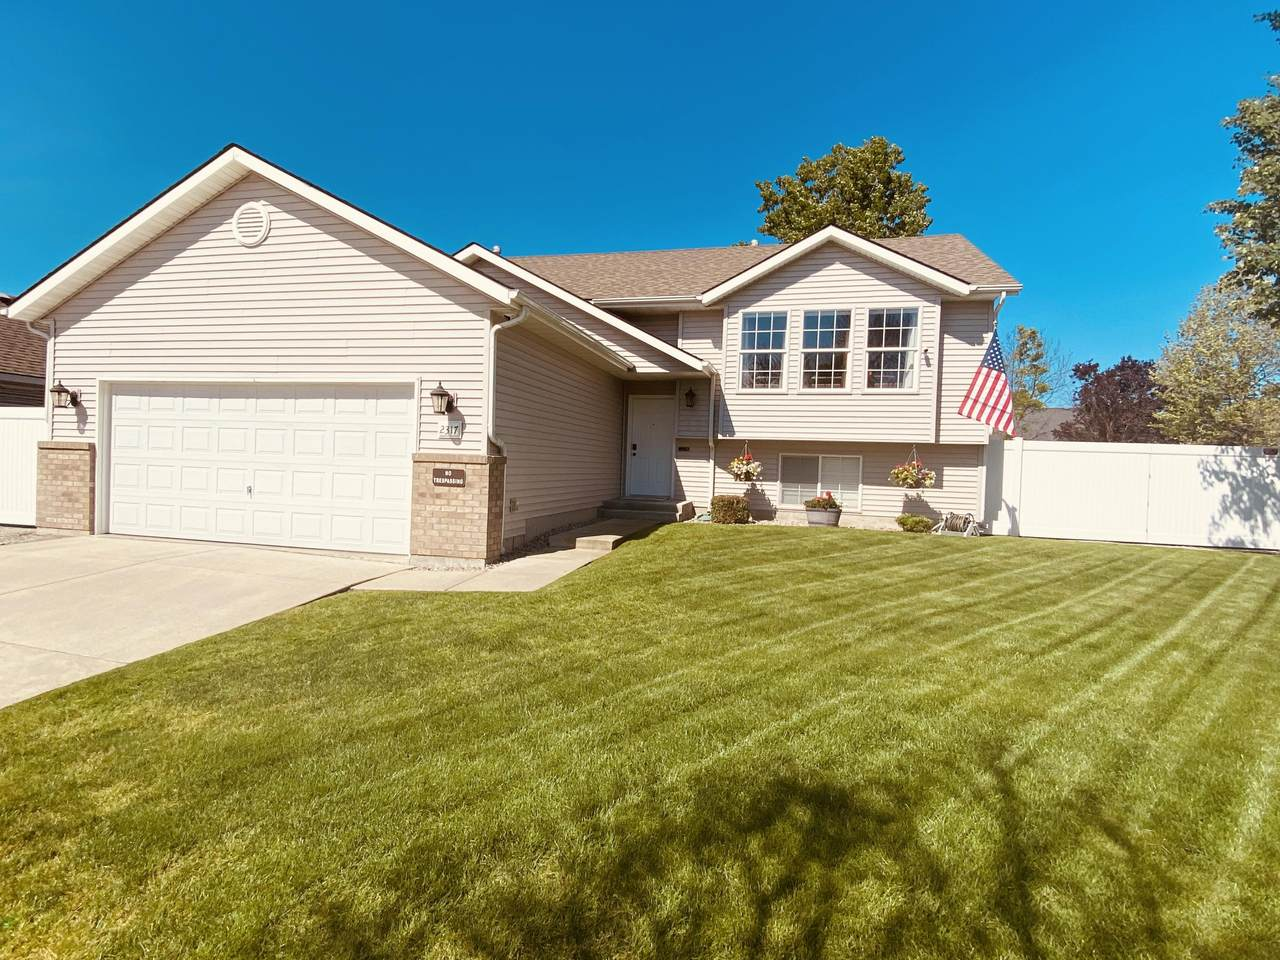 2317 Coolwater Dr - Photo 1